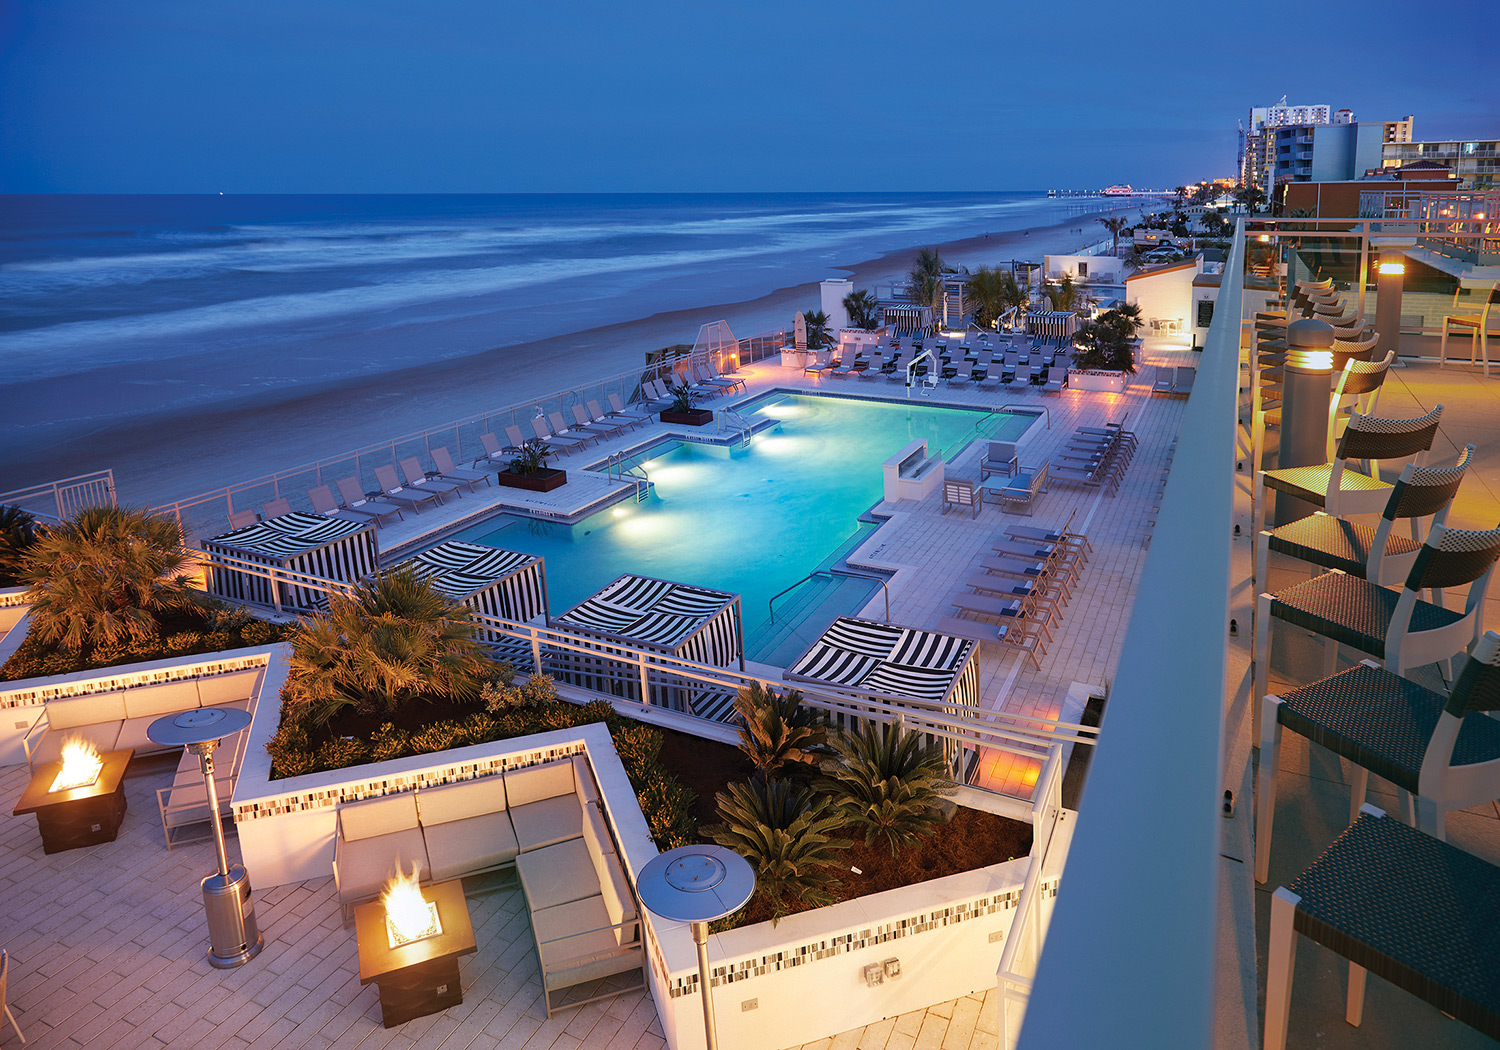 Arial view of Hard RockHotel Daytona Beach.